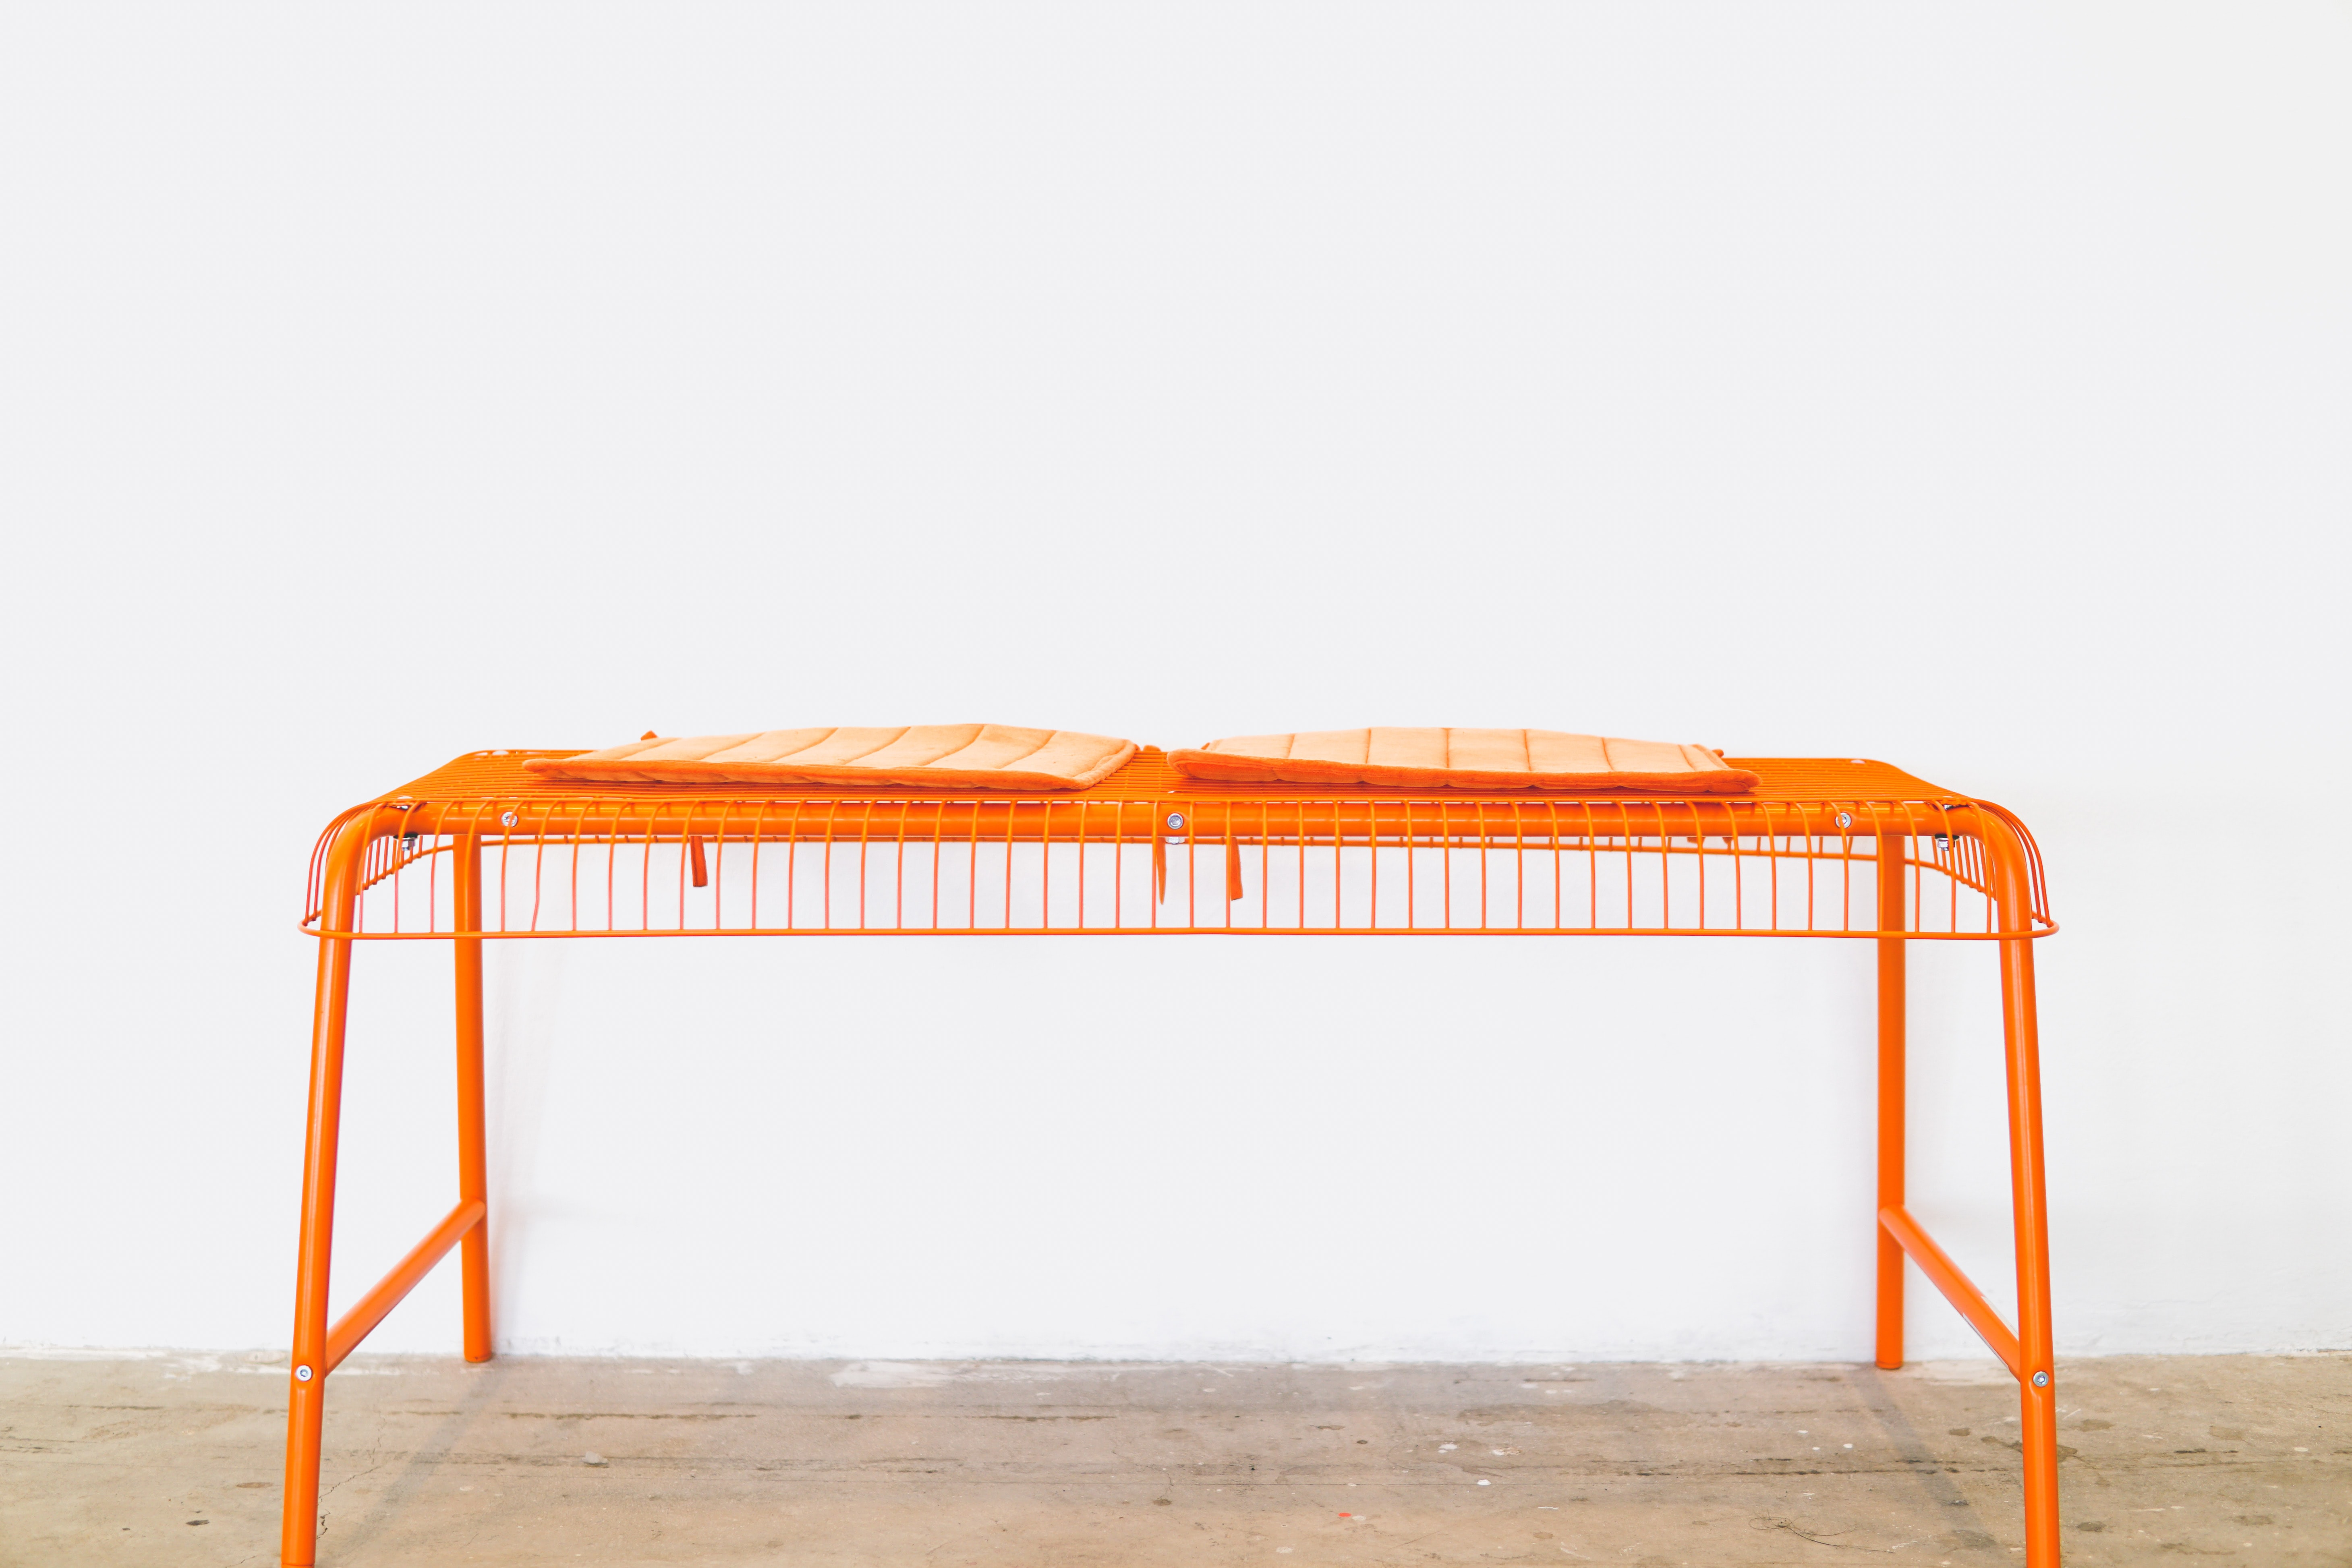 orange steel scaffolding on brown surface